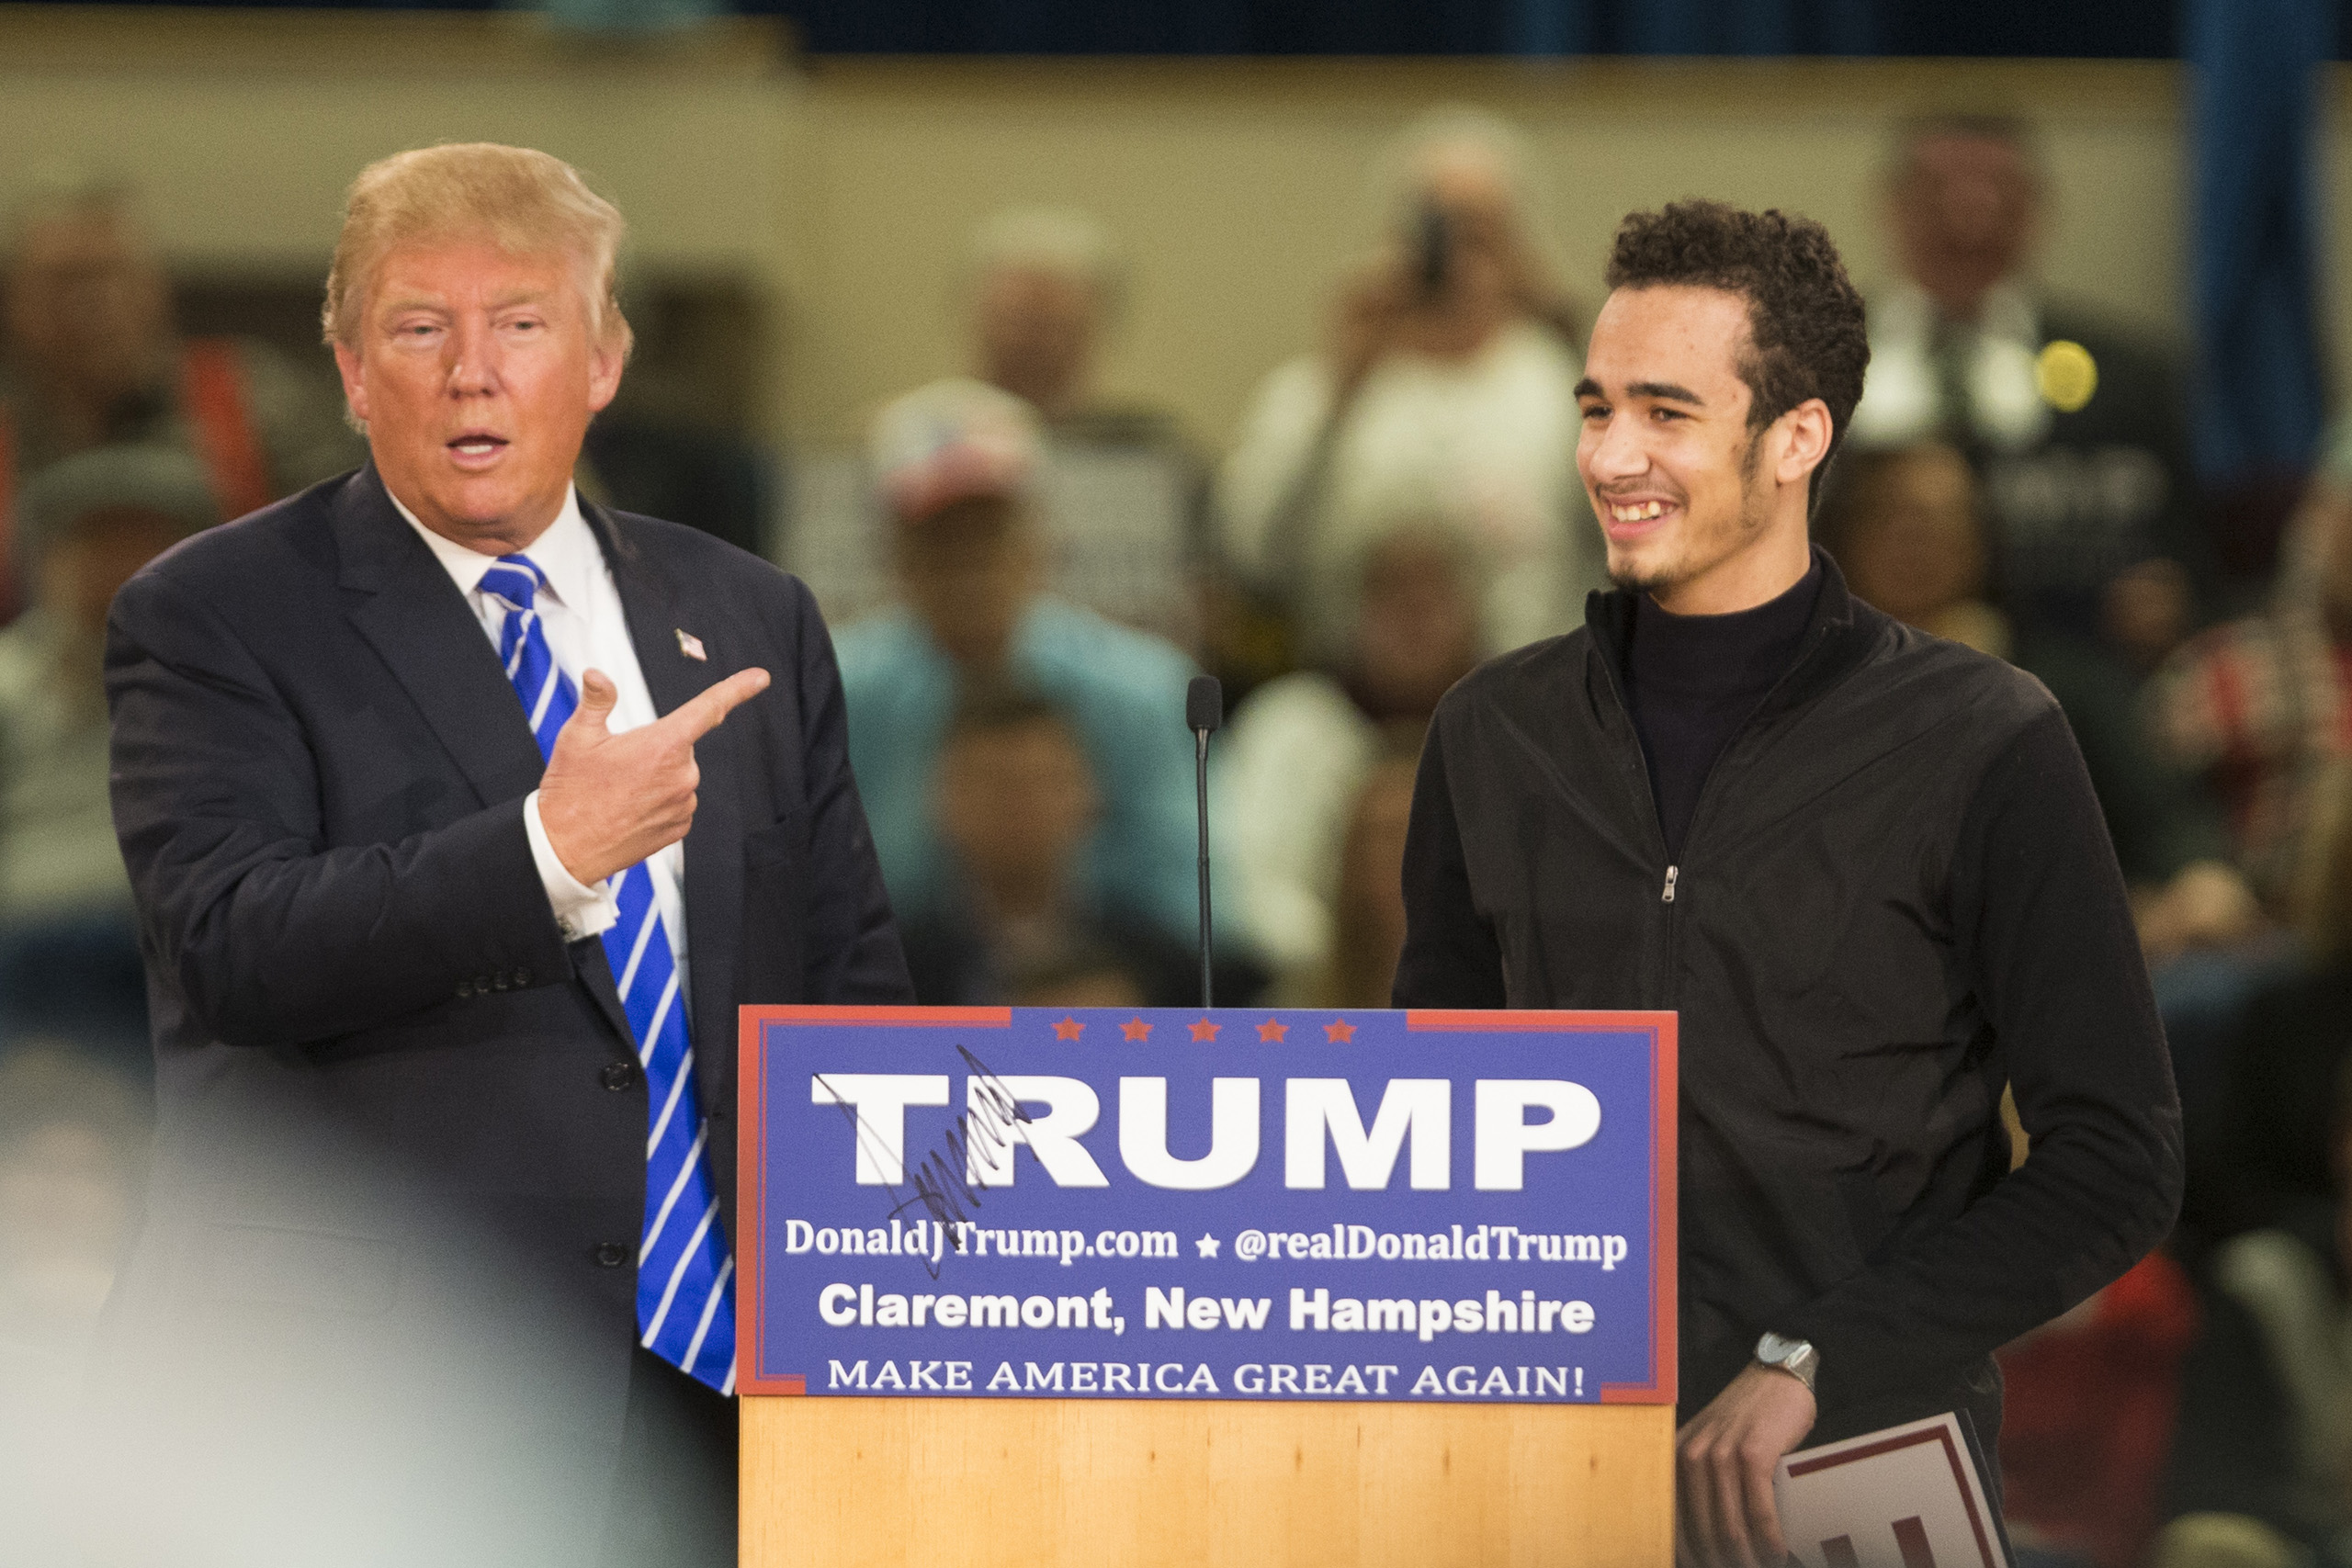 Republican presidential Donald Trump welcomes a supporter on stage at Stevens High School  in Claremont, N.H. on Jan. 5, 2016.